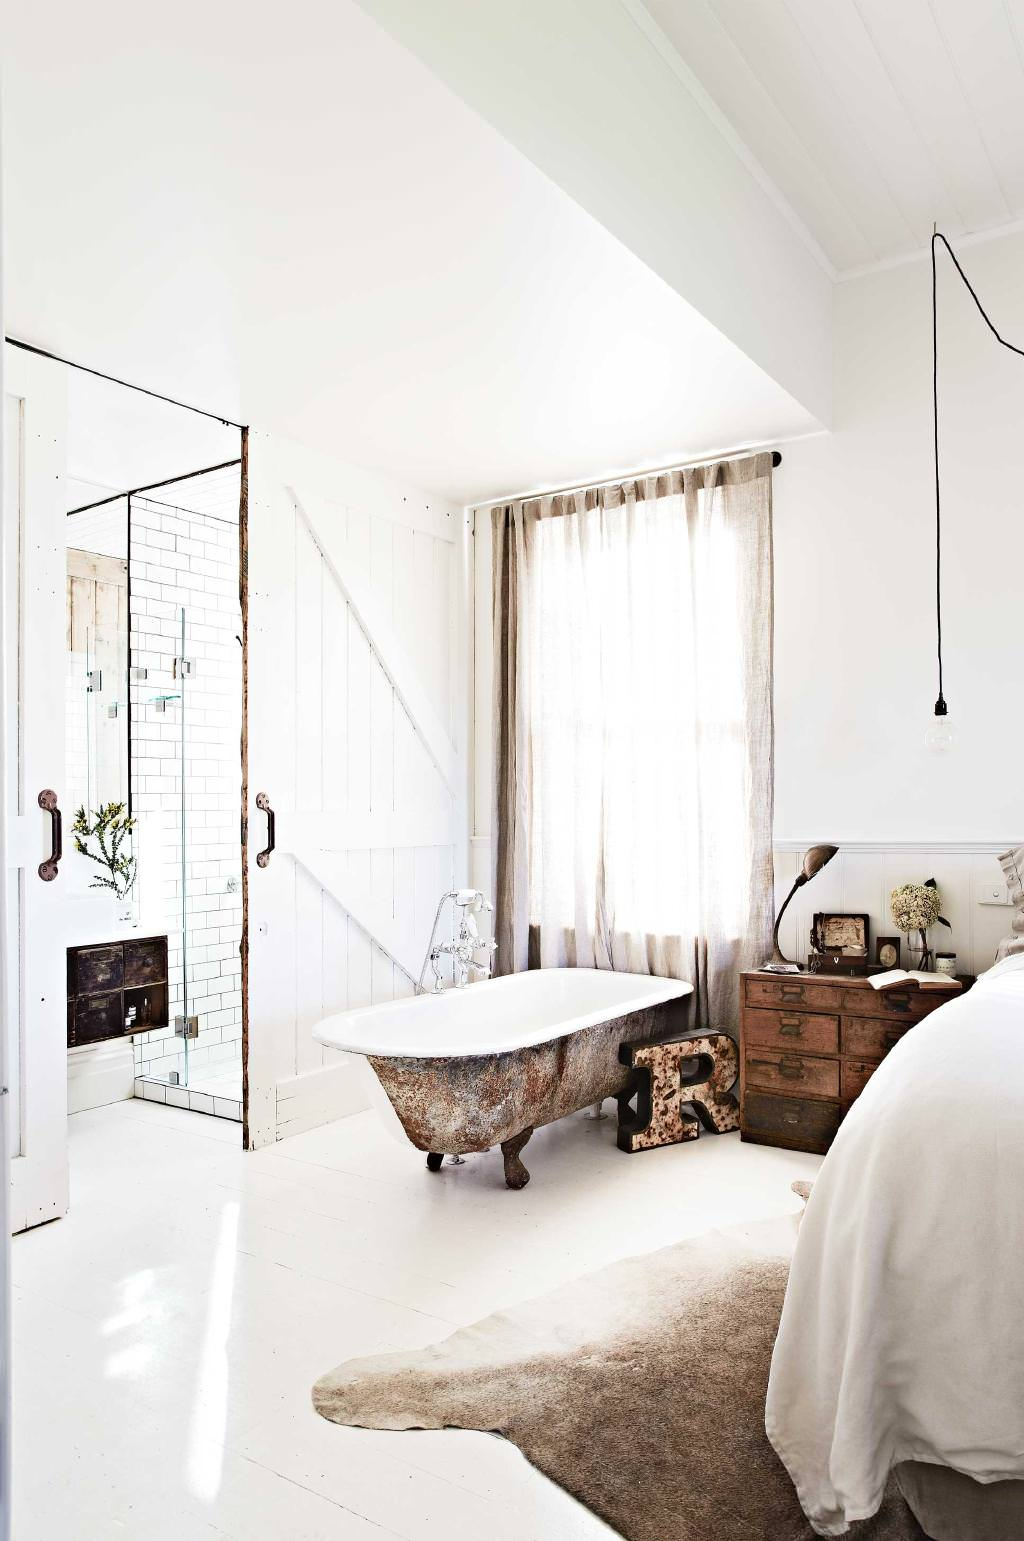 bedroom in white floor, white wall, white wooden door, wooden side cabinet, rusted look bathtub with clawfoot